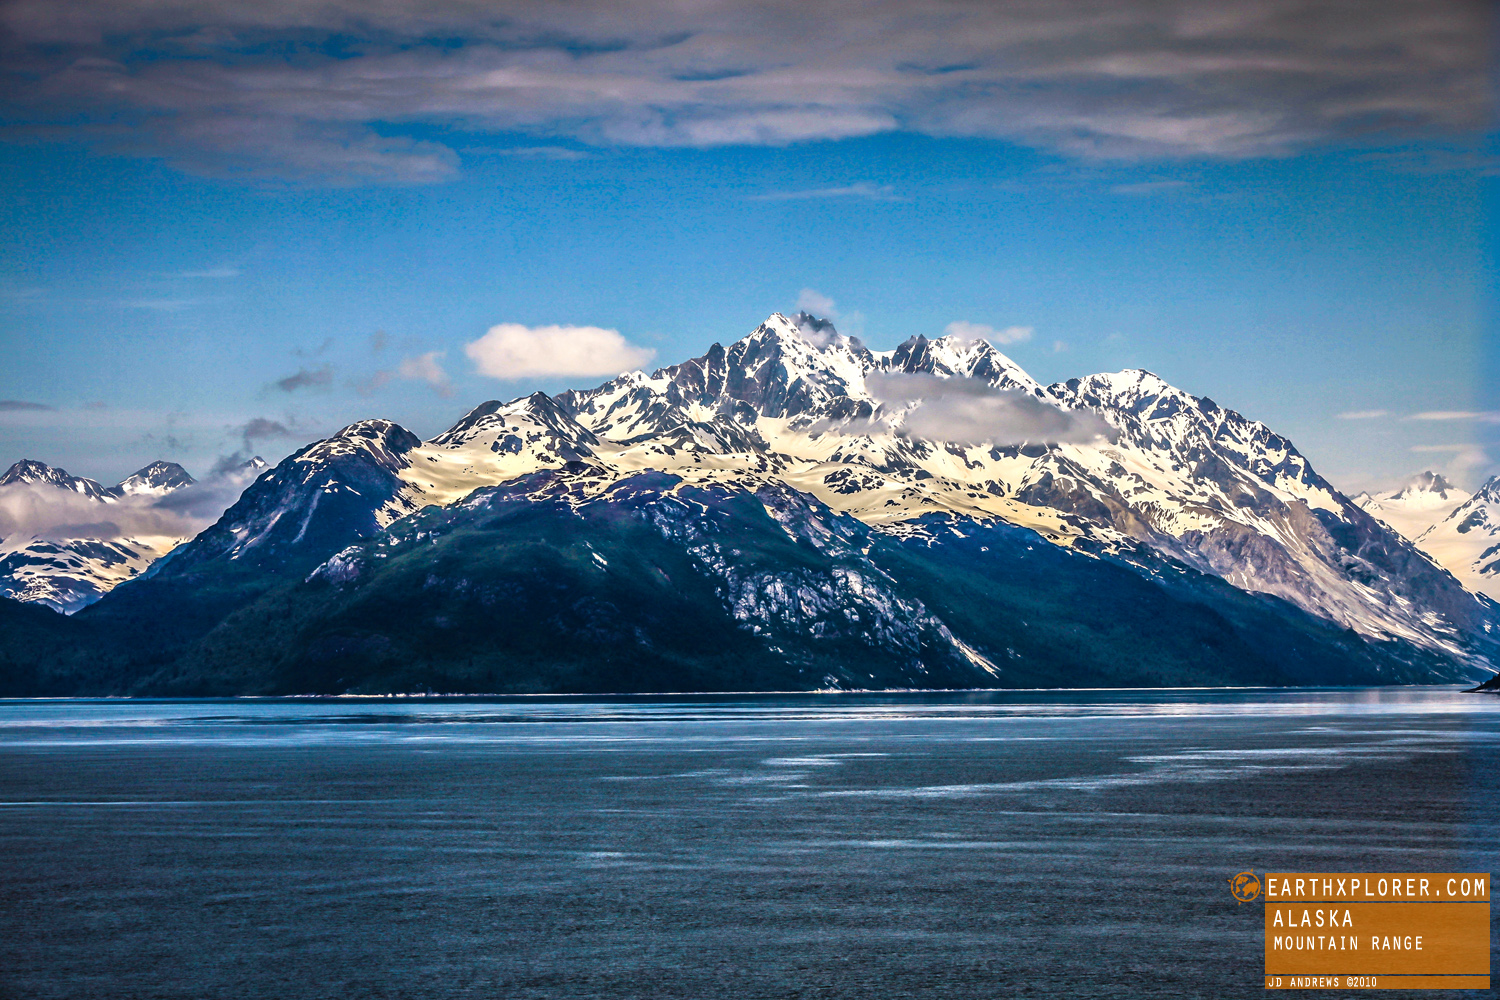 It's almost impossible to take a bad photo in Alaska.